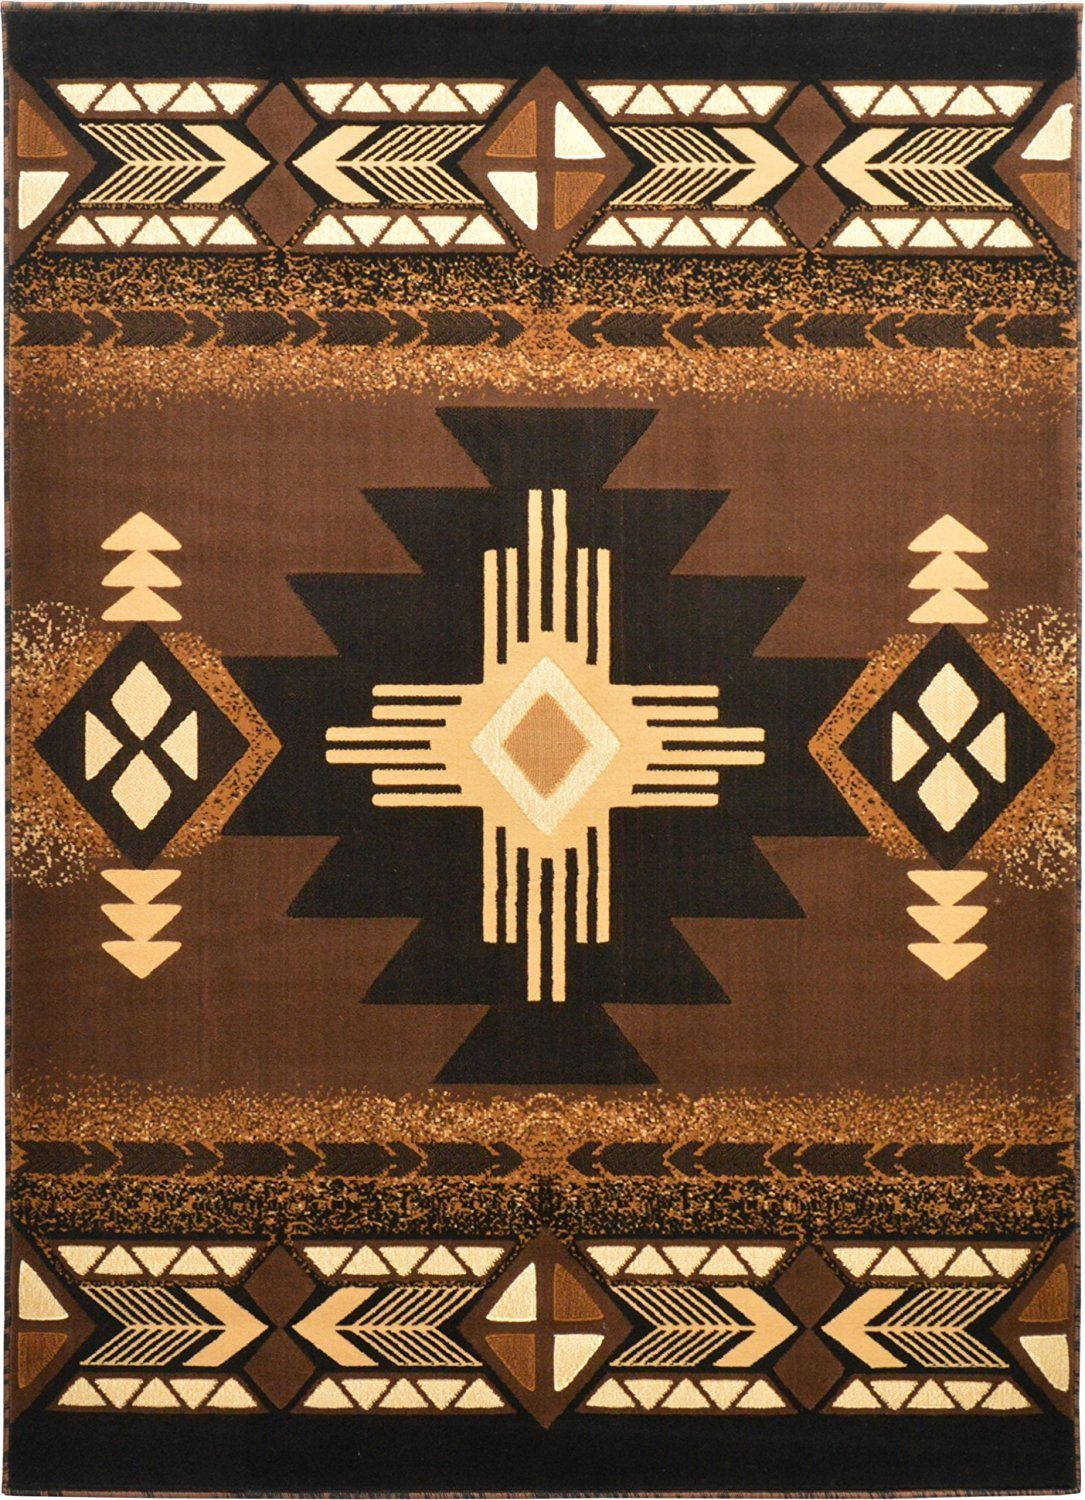 Get Quotations Rugs 4 Less Collection Southwest Native American Indian Door Mat Area Rug Design R4l 318 Brown